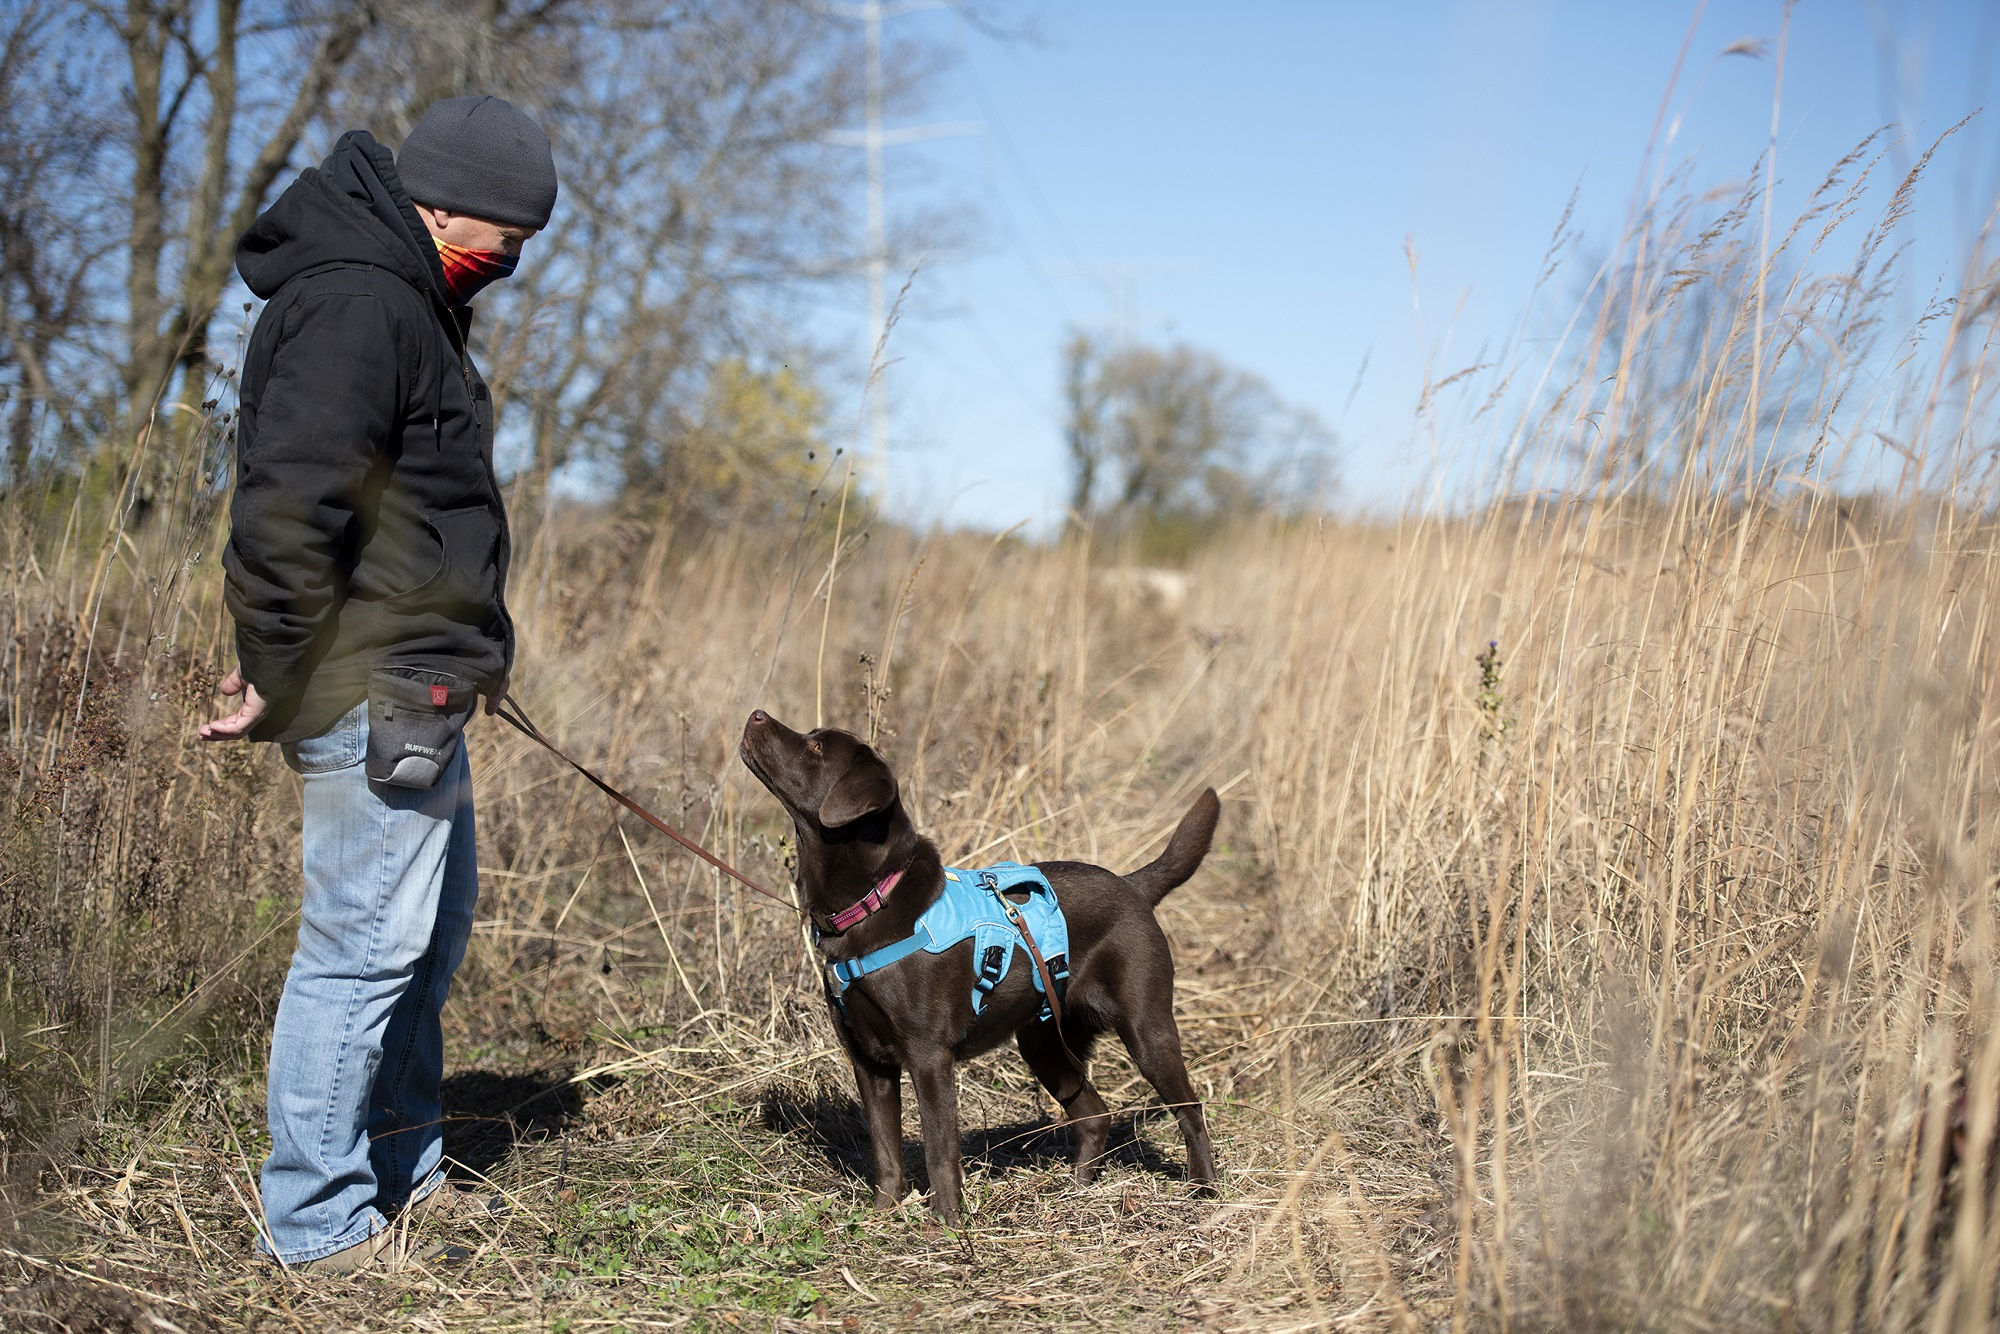 Cory Gritzmacher walks with Tilia on a leash Wednesday, Oct. 28, 2020, at the Mequon Nature Preserve. (Angela Major/WPR)